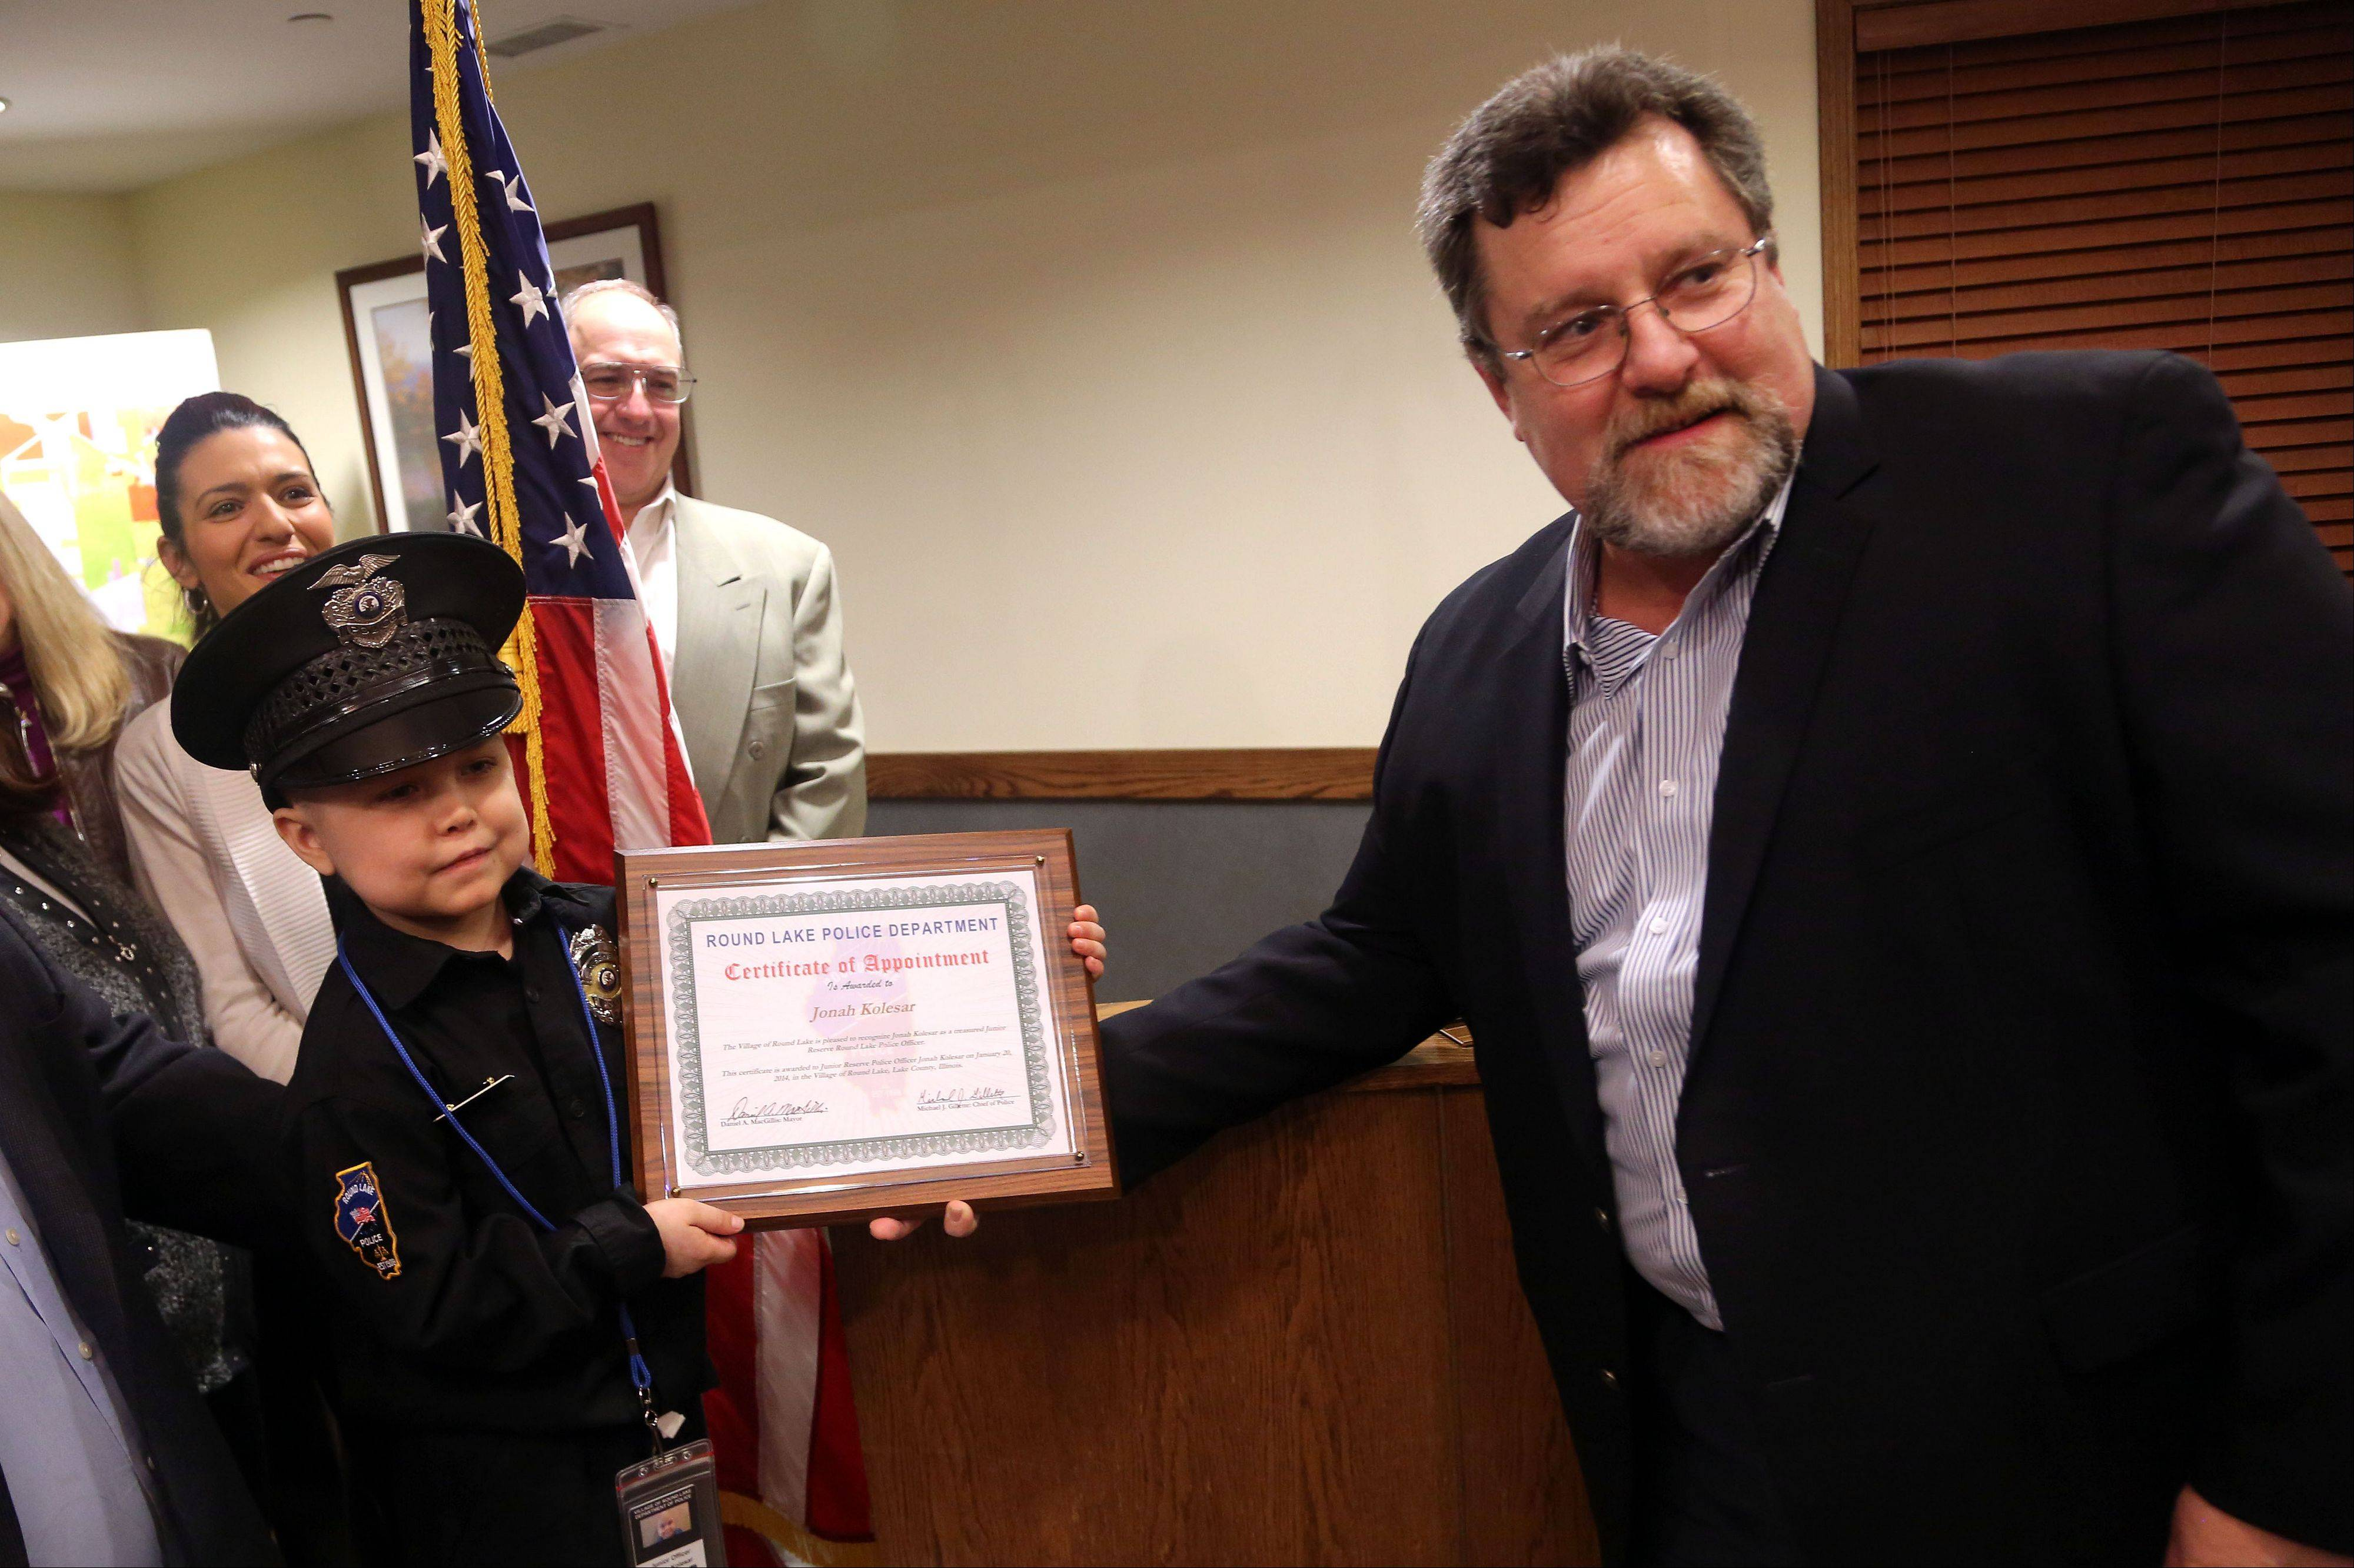 Six-year-old Jonah Kolesar of Round Lake, left, is given a certificate of appointment Monday by Round Lake Mayor Daniel MacGillis after being sworn in as a junior reserve police officer at the Round Lake village board meeting. Jonah suffers from an autoimmune disease called IPEX Syndrome.